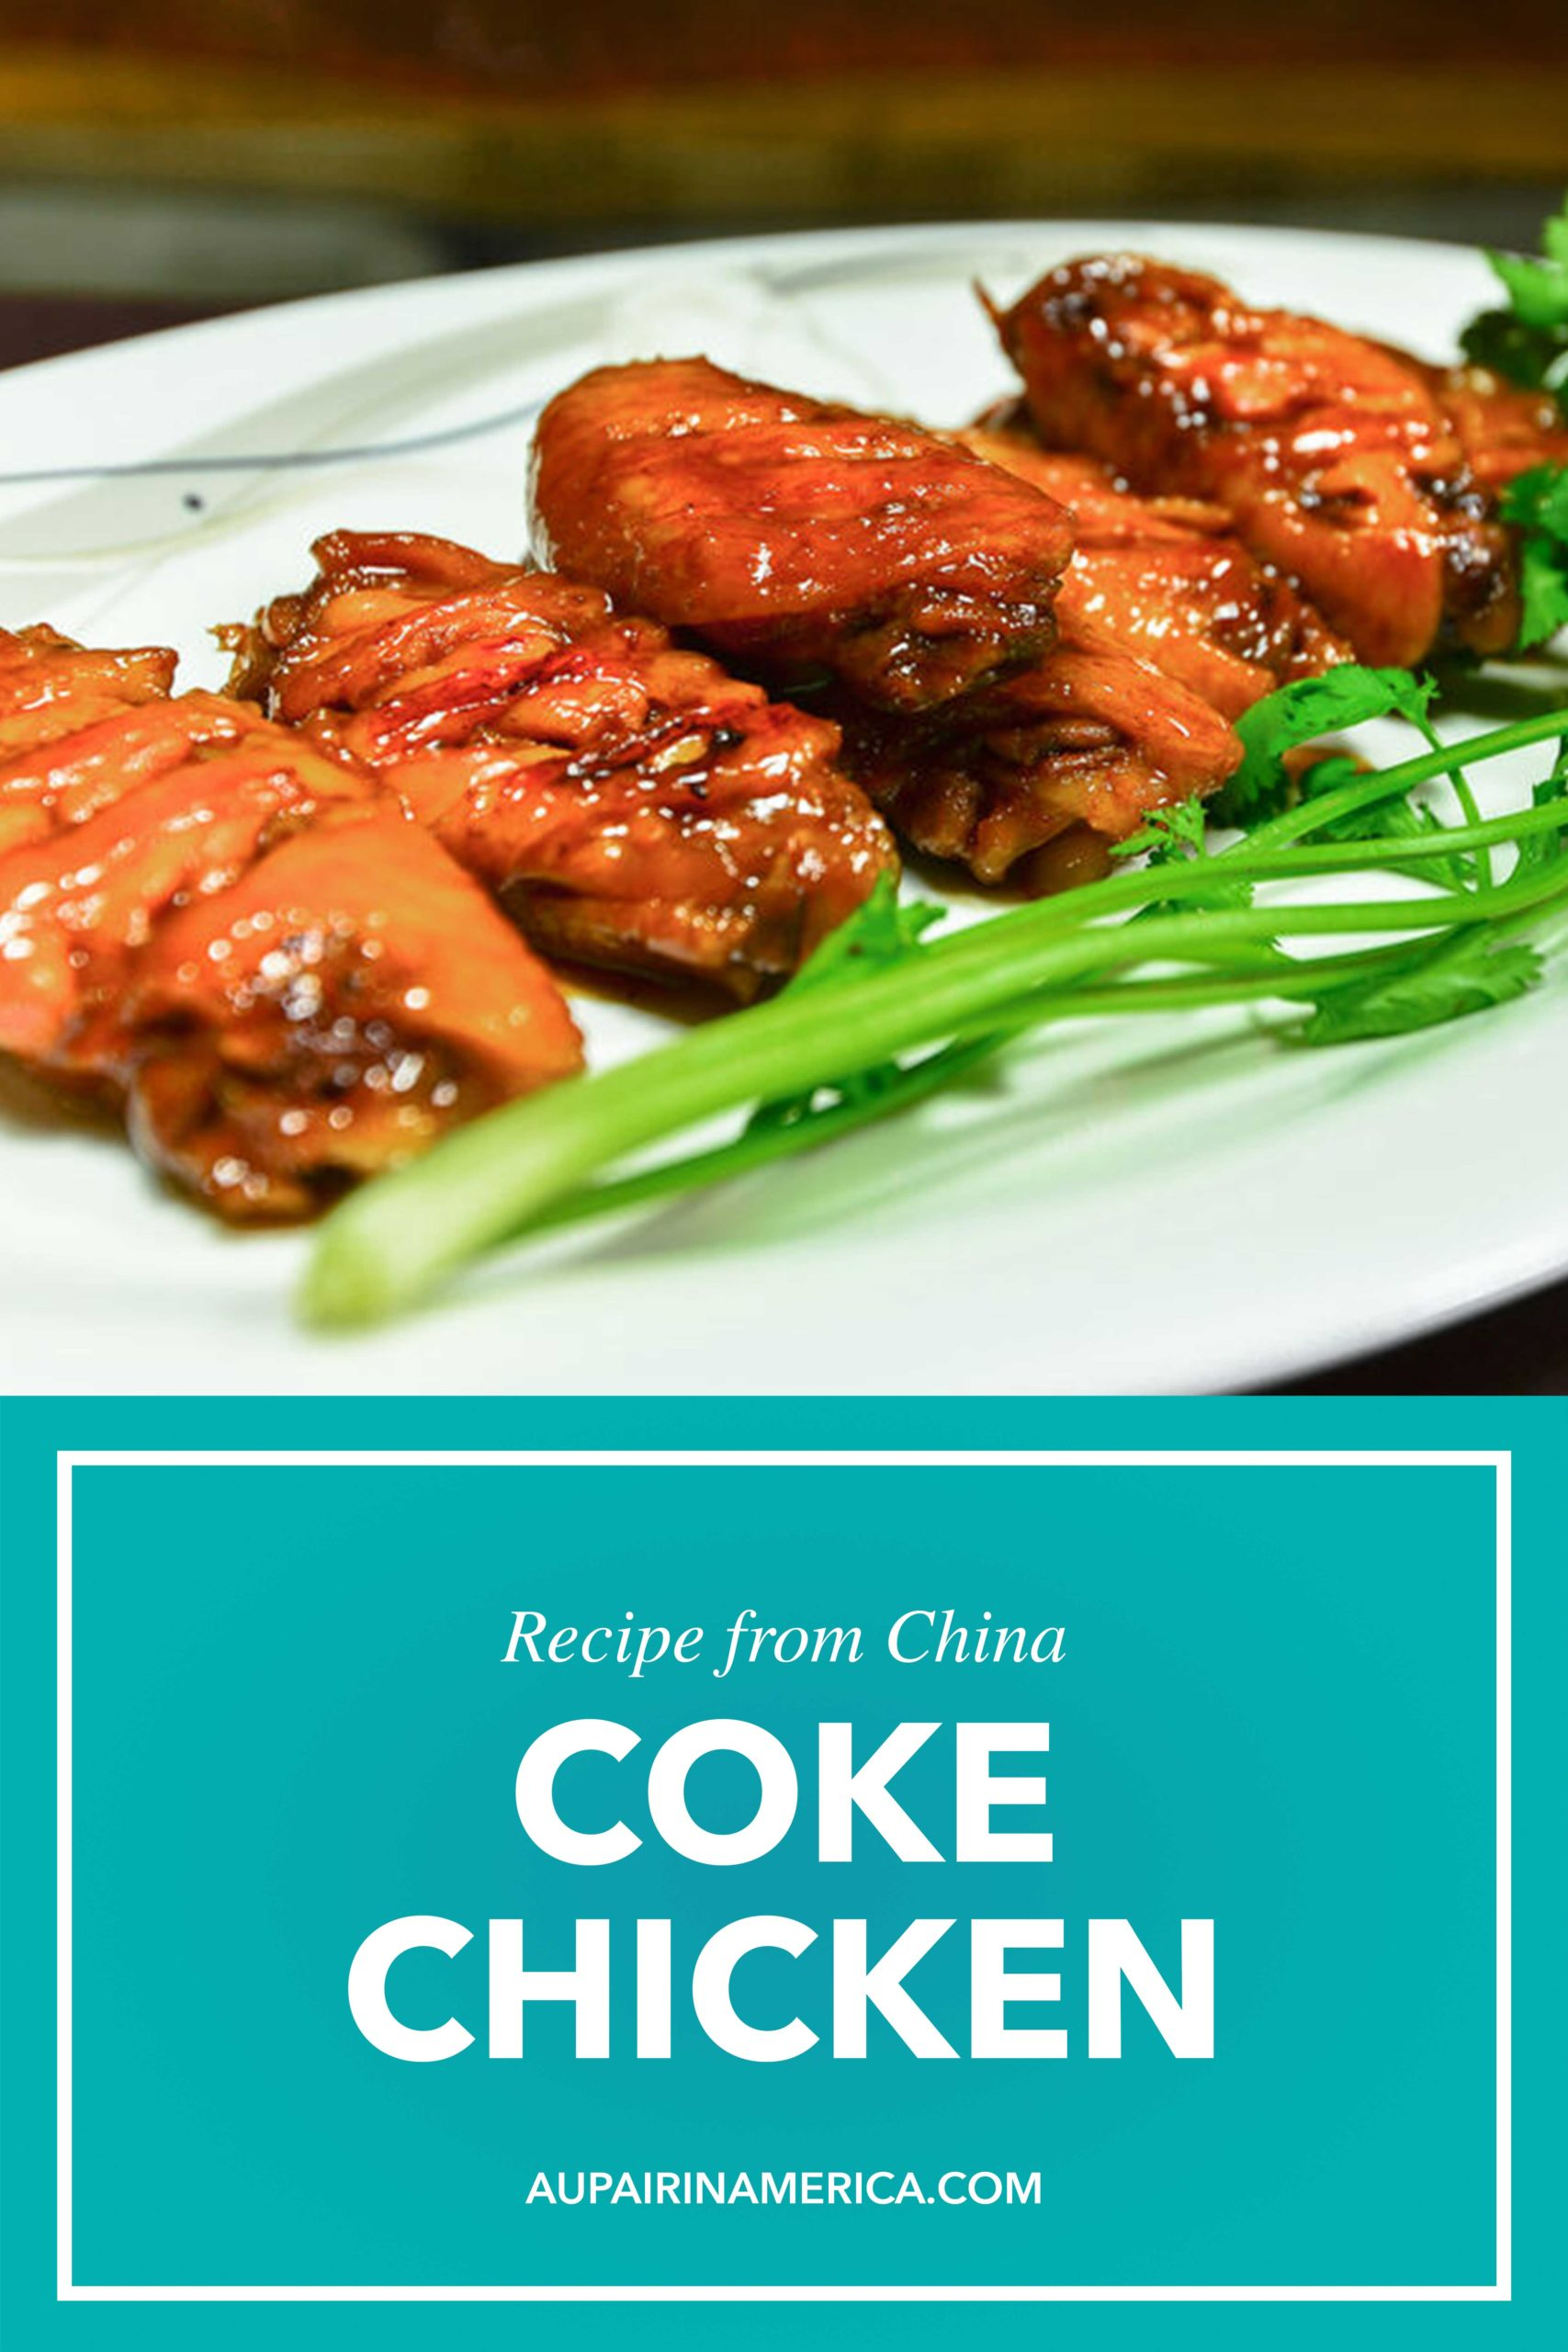 Coke Chicken from China | Au Pair in America